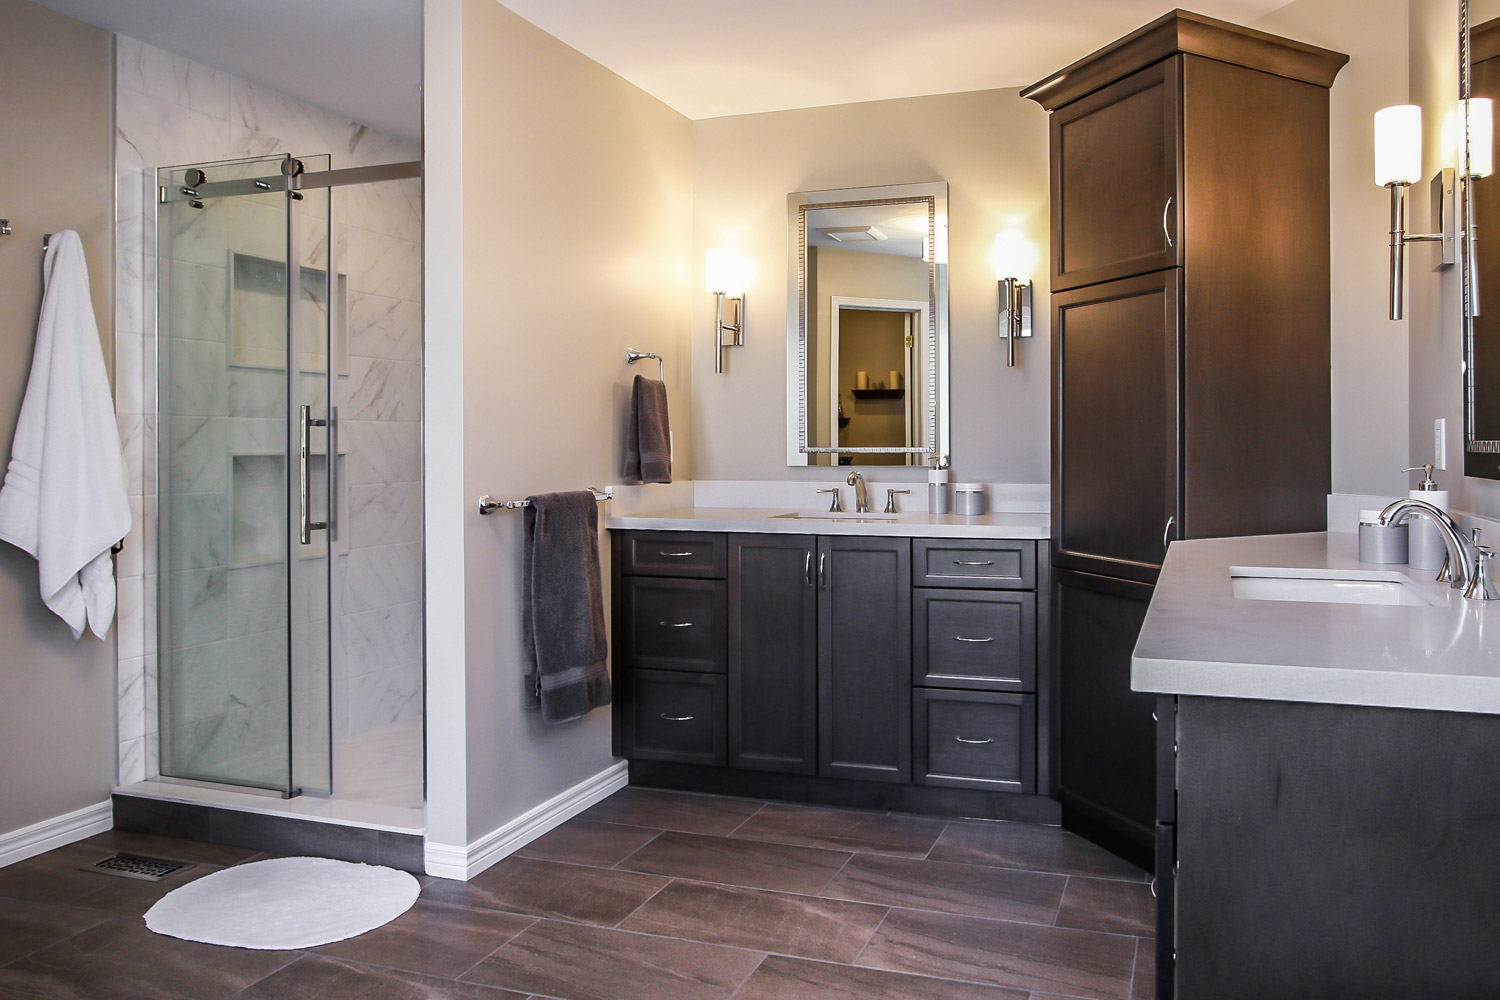 Ensuite renovation with dual vanities, stand up shower, soaker tub - Total Living Concepts barrie ontario